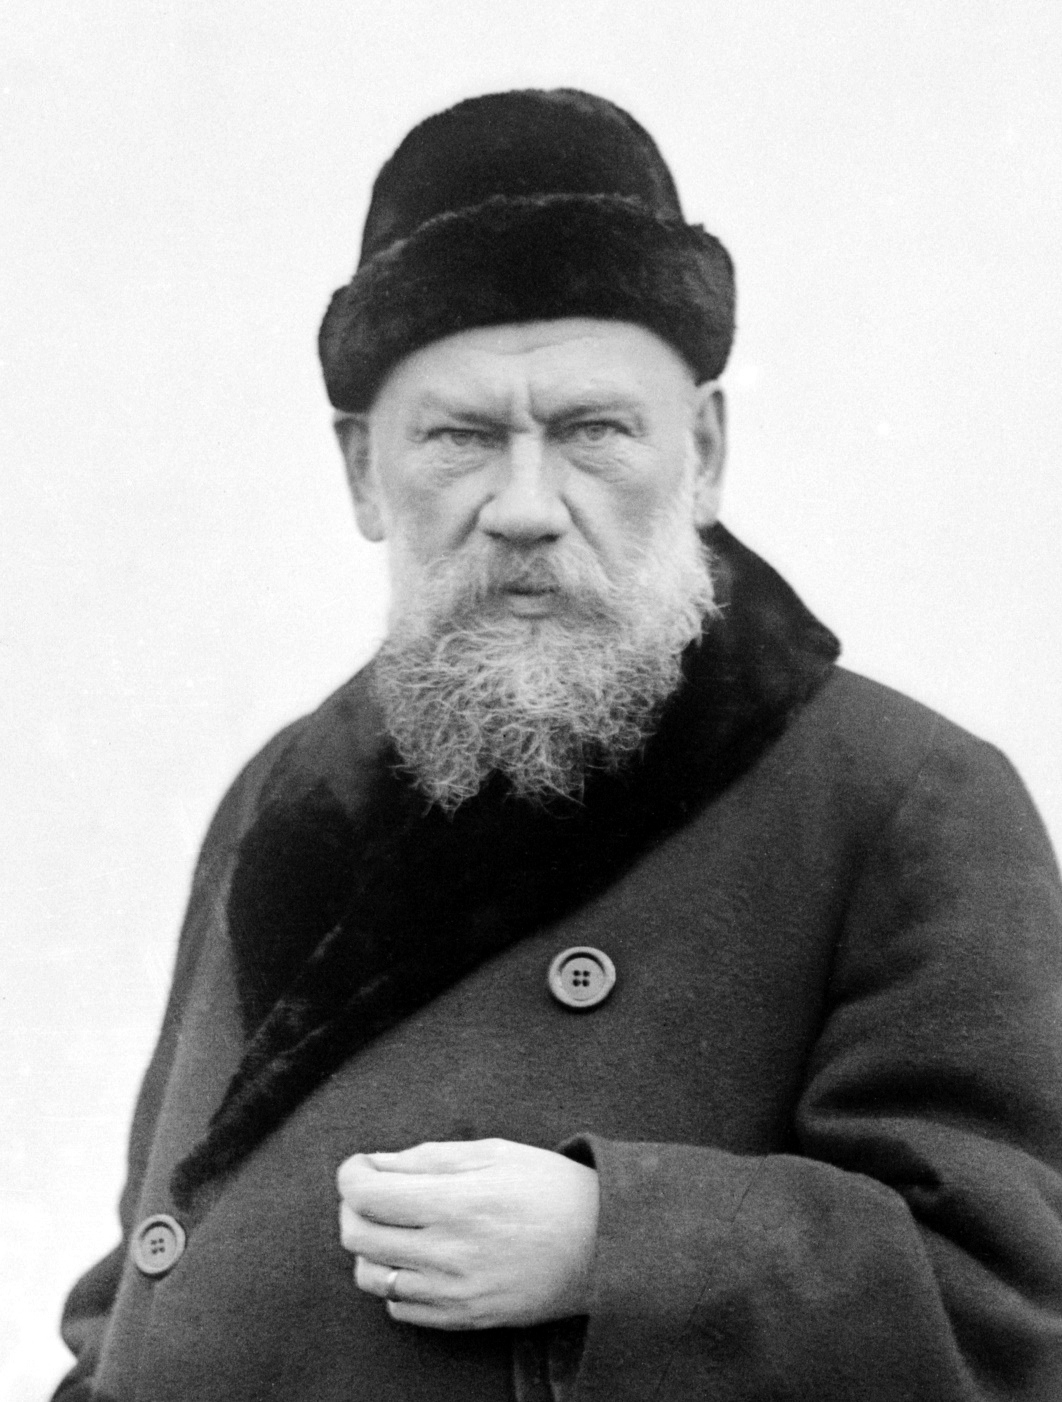 http://upload.wikimedia.org/wikipedia/commons/f/fb/Count_Tolstoy,_with_hat.jpg